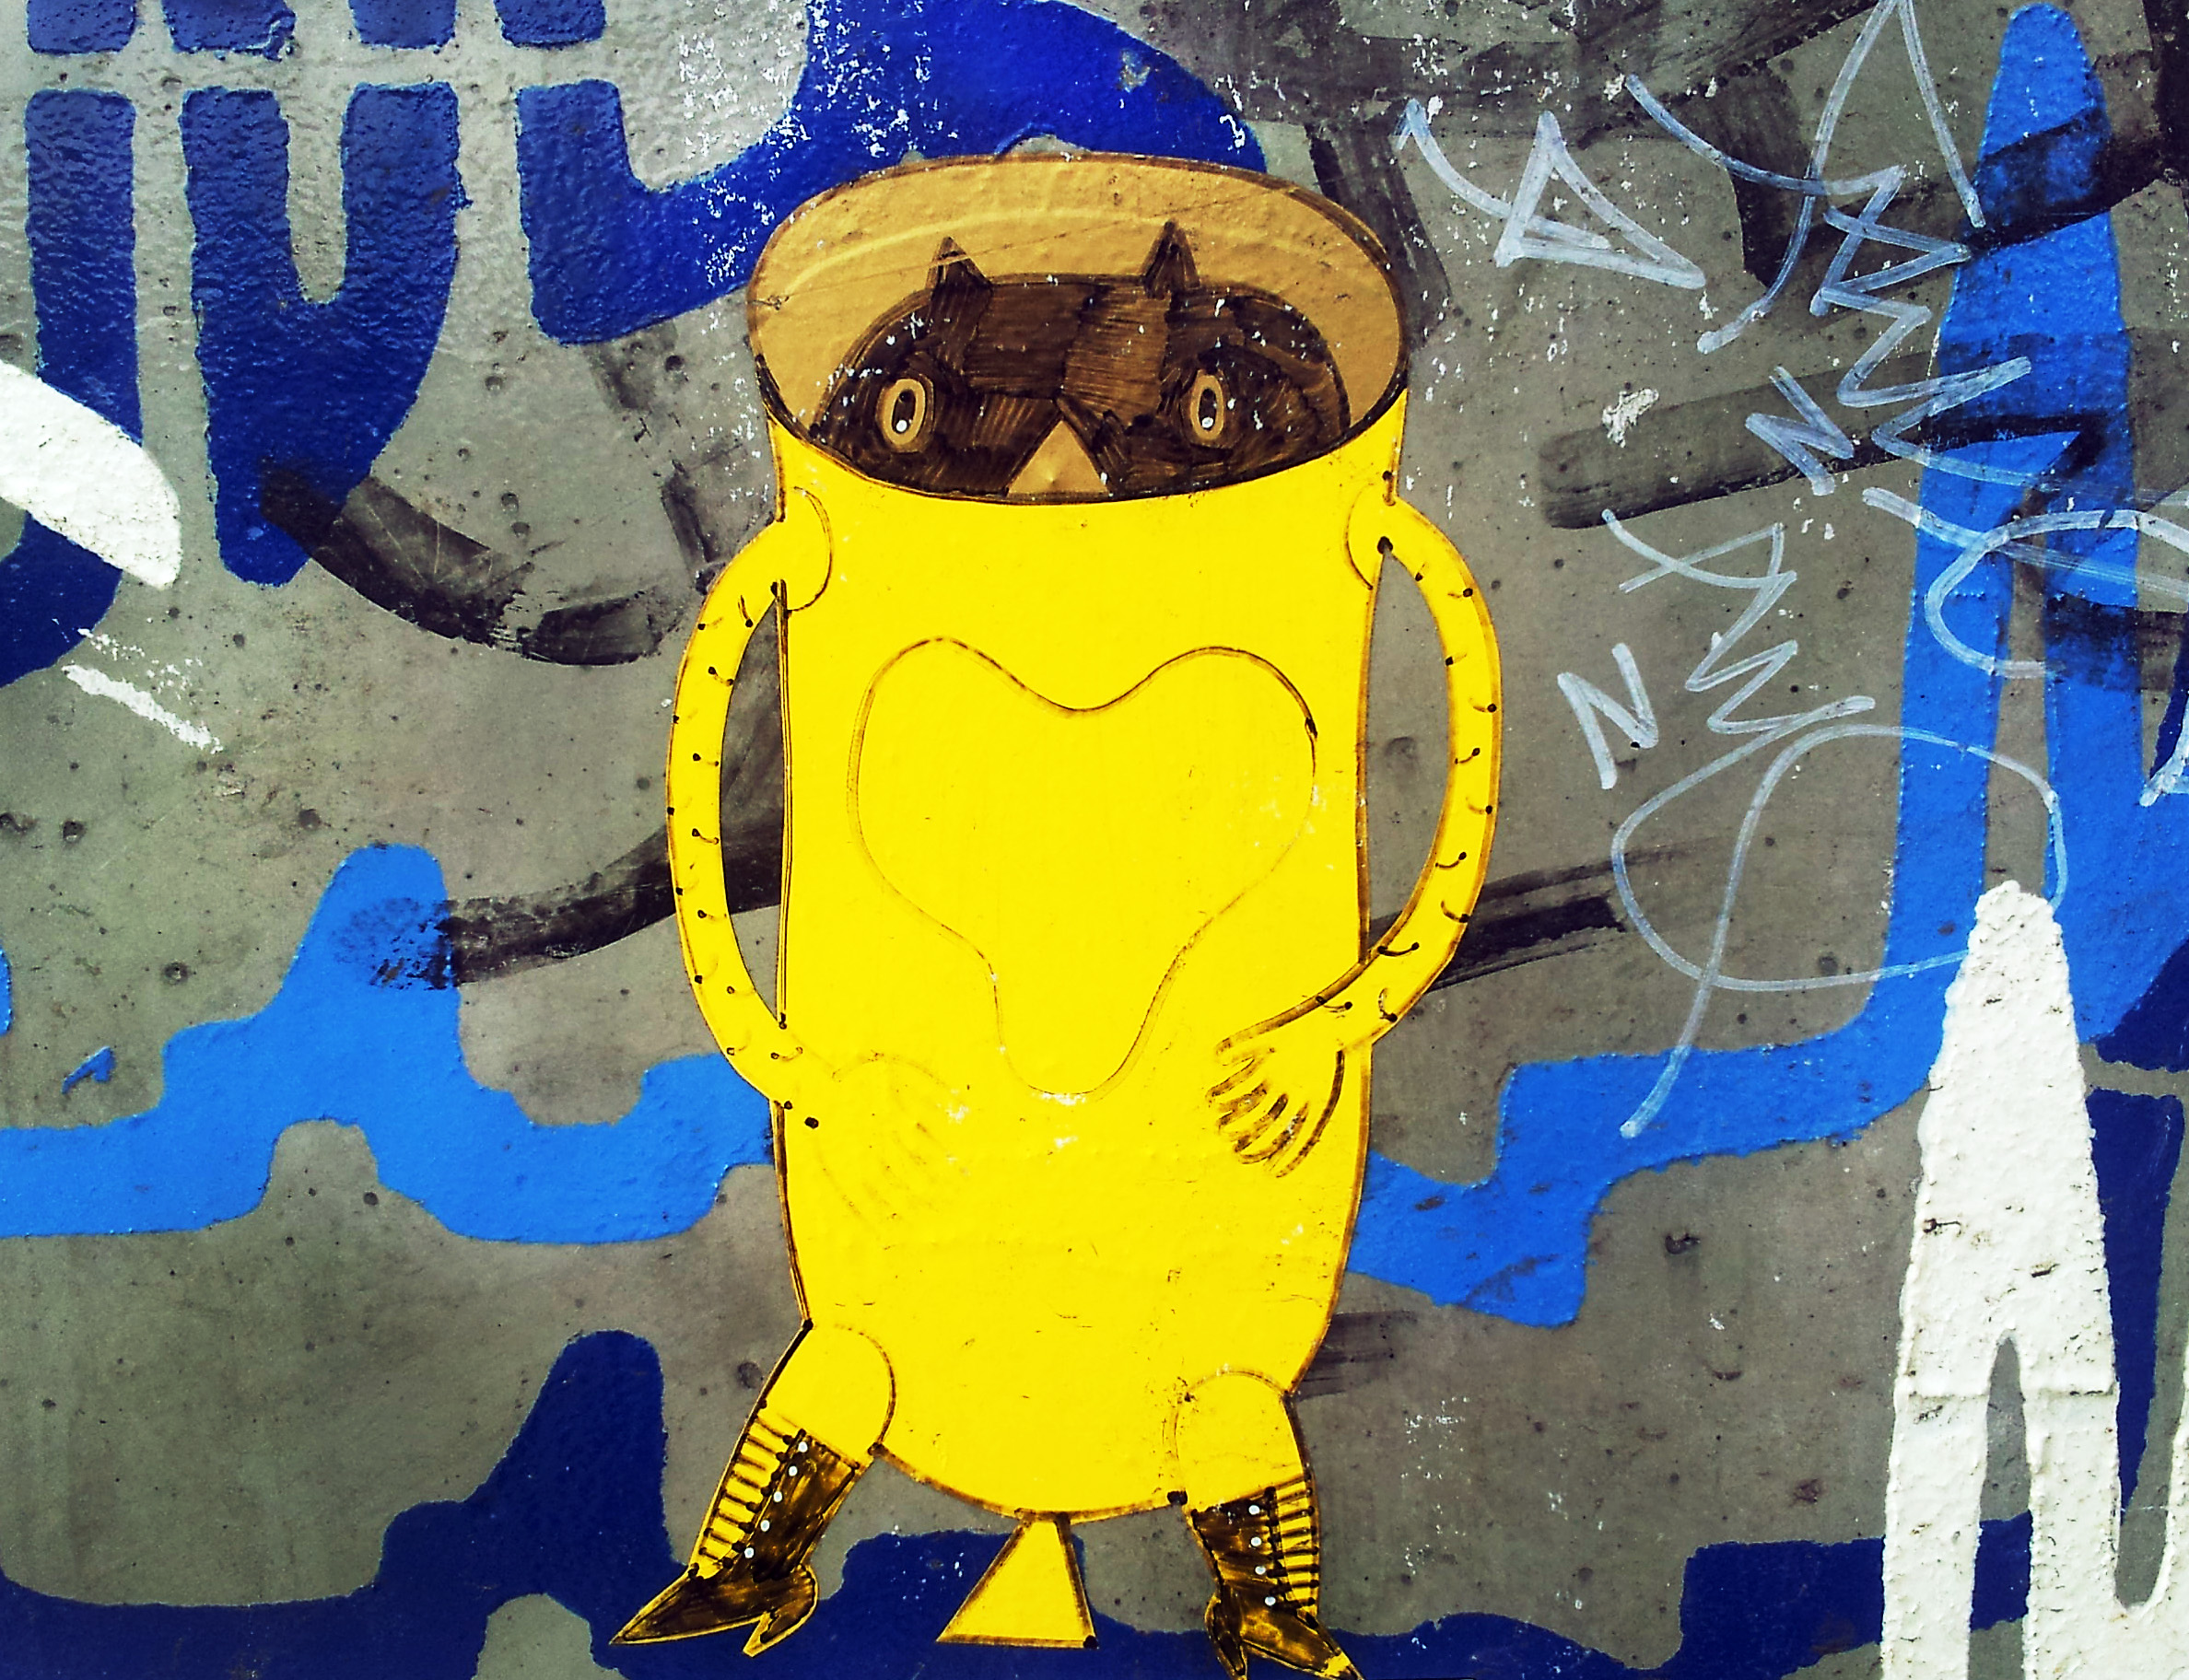 Graffiti animal in a bright yellow suit